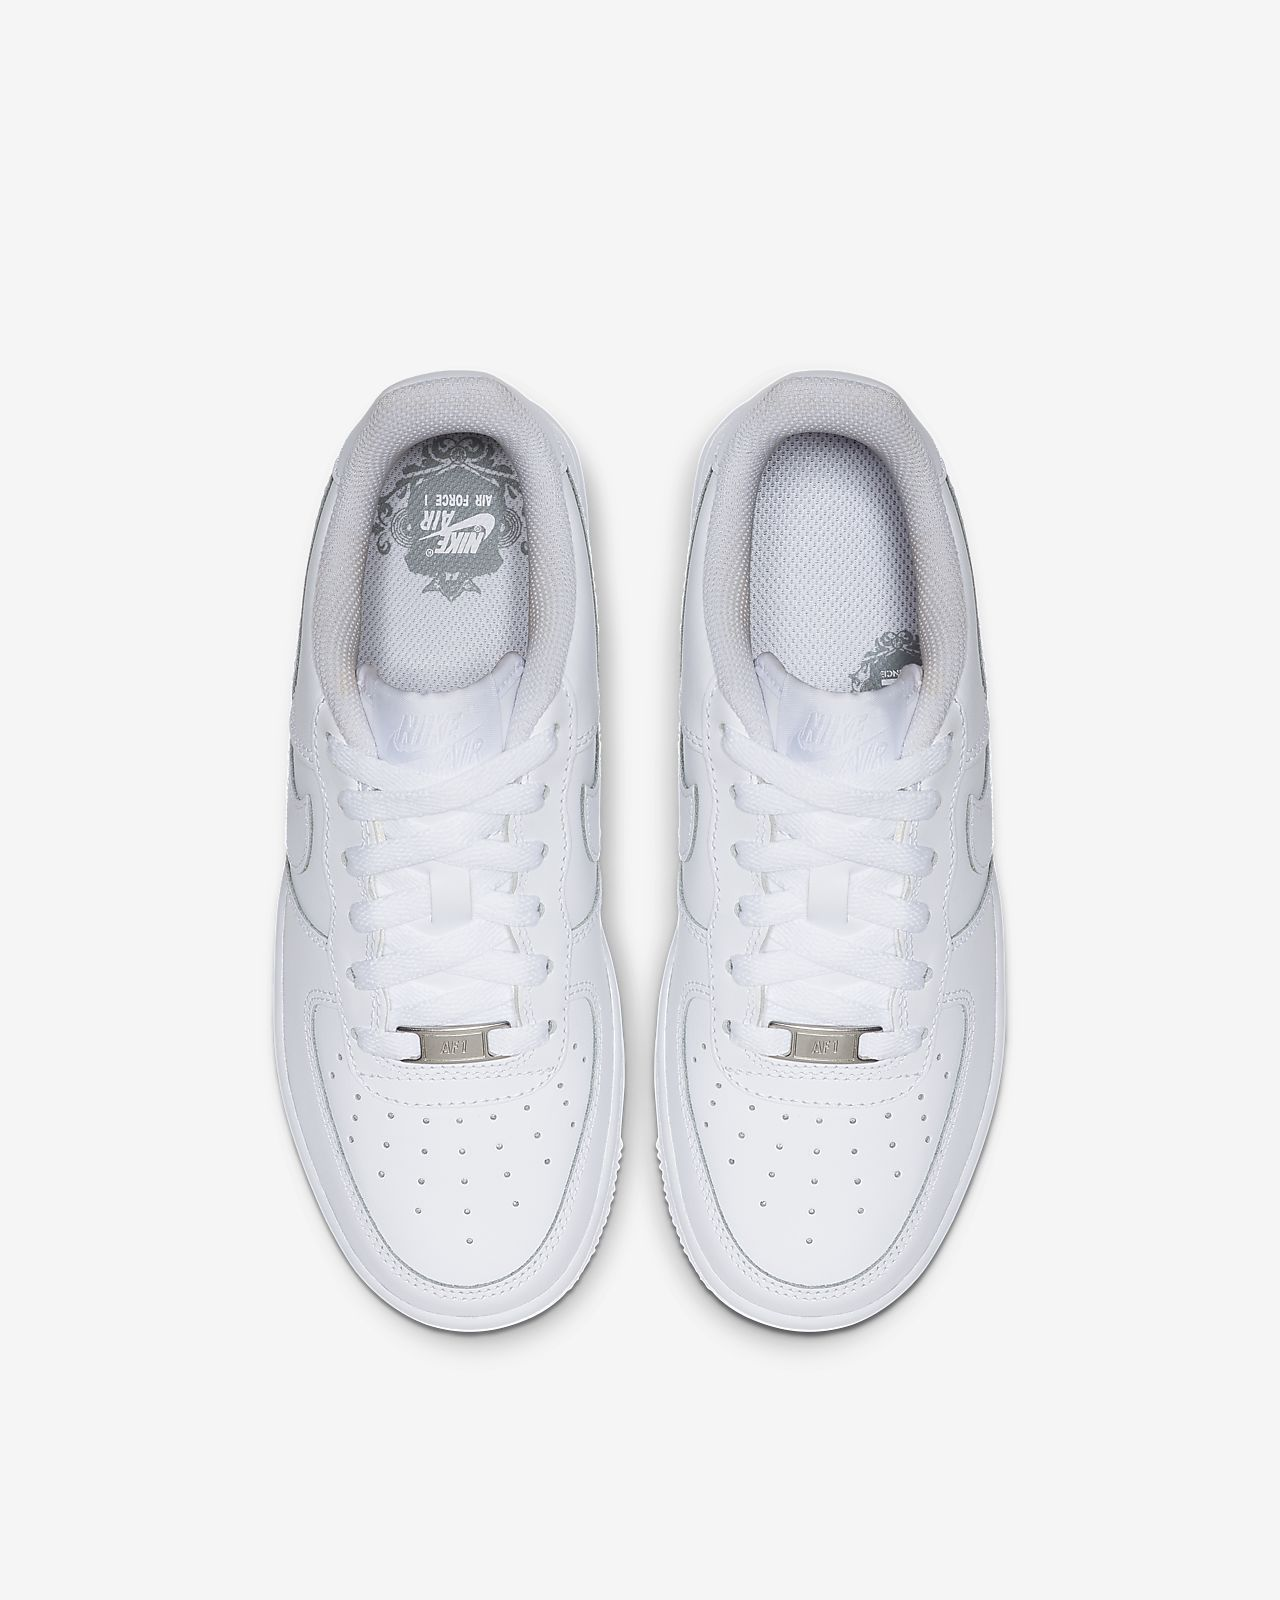 397993d2718 Nike Air Force 1 Big Kids  Shoe. Nike.com